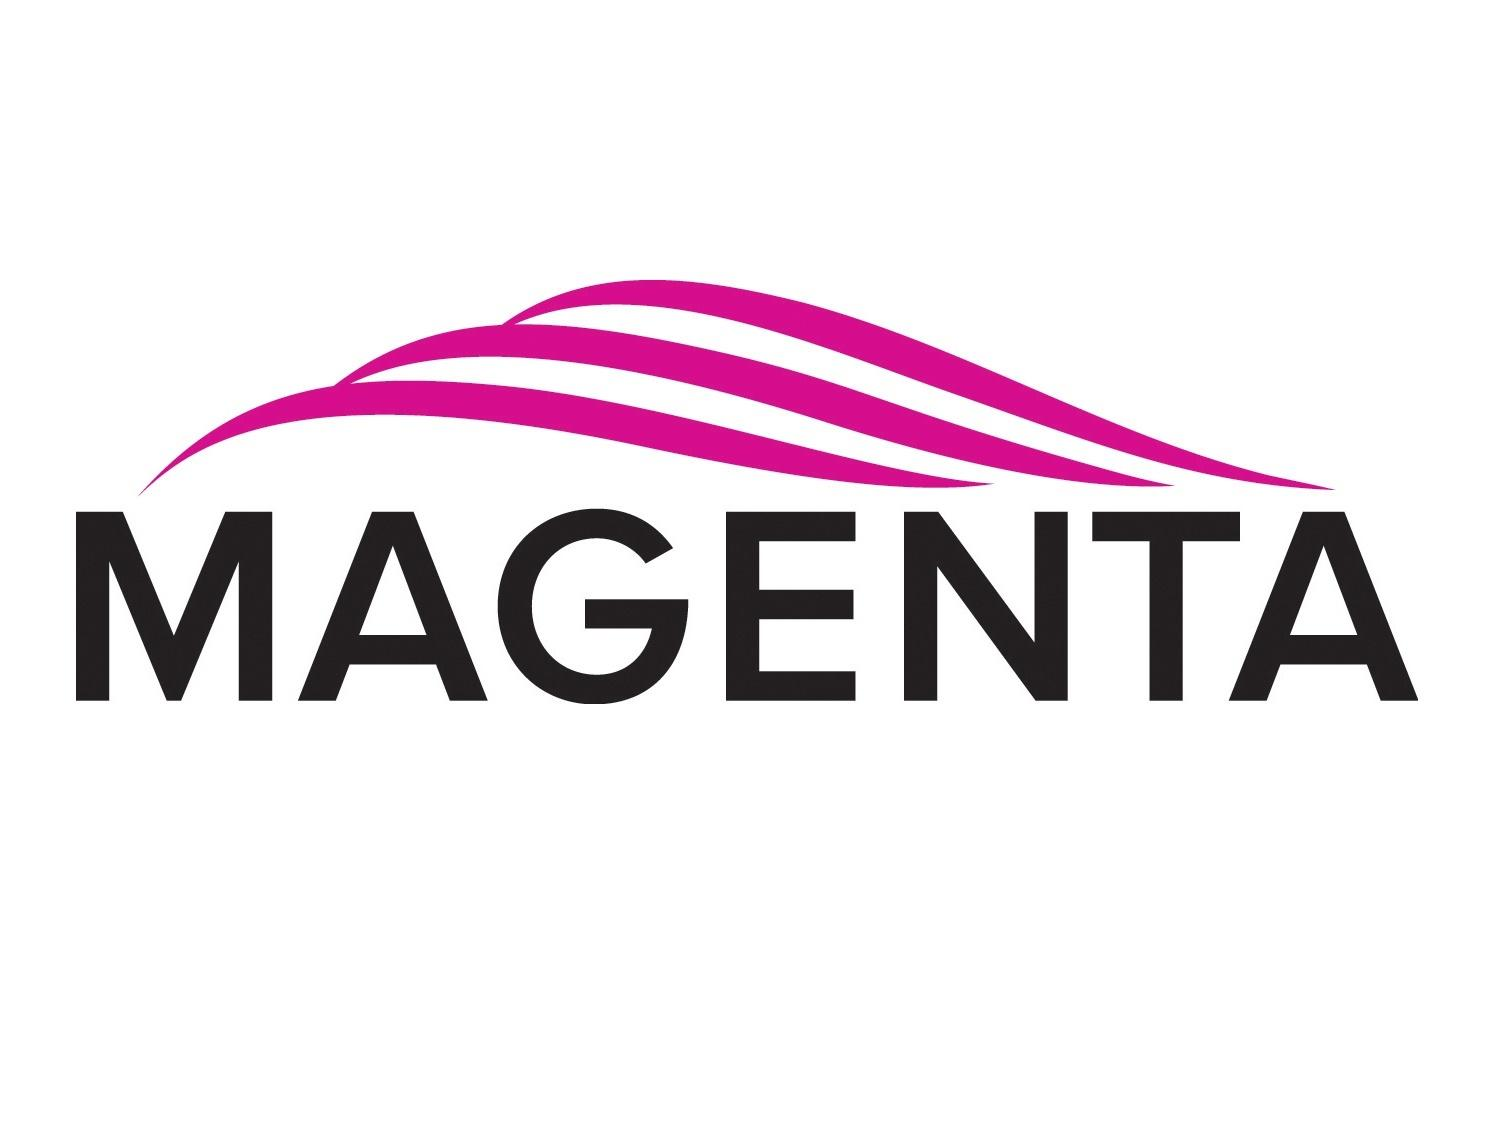 2390022-01 4U Vertical Rackmount Kit (Fits 10 Voyager Units w Video/Core Modules) by Magenta Research